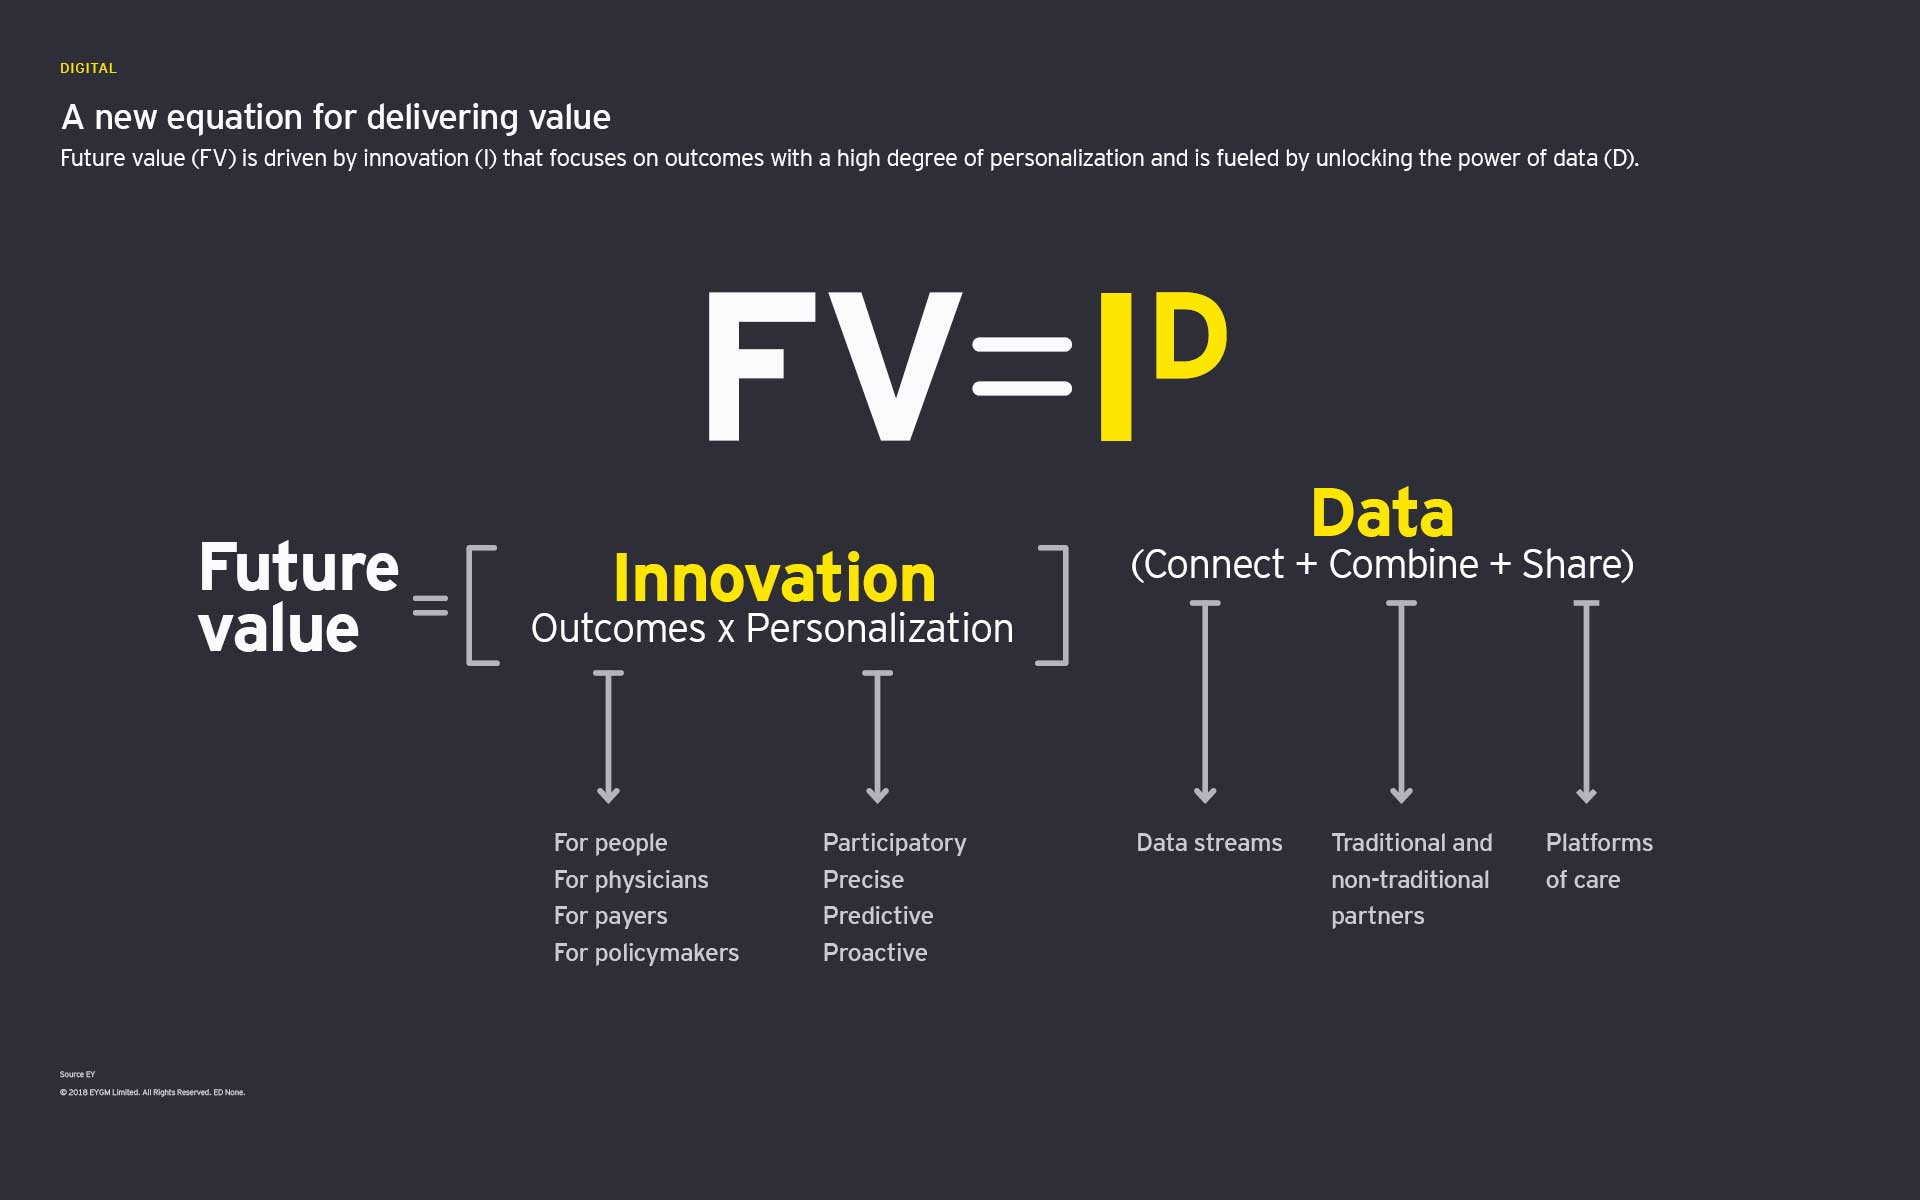 A new equation for delivering value graph